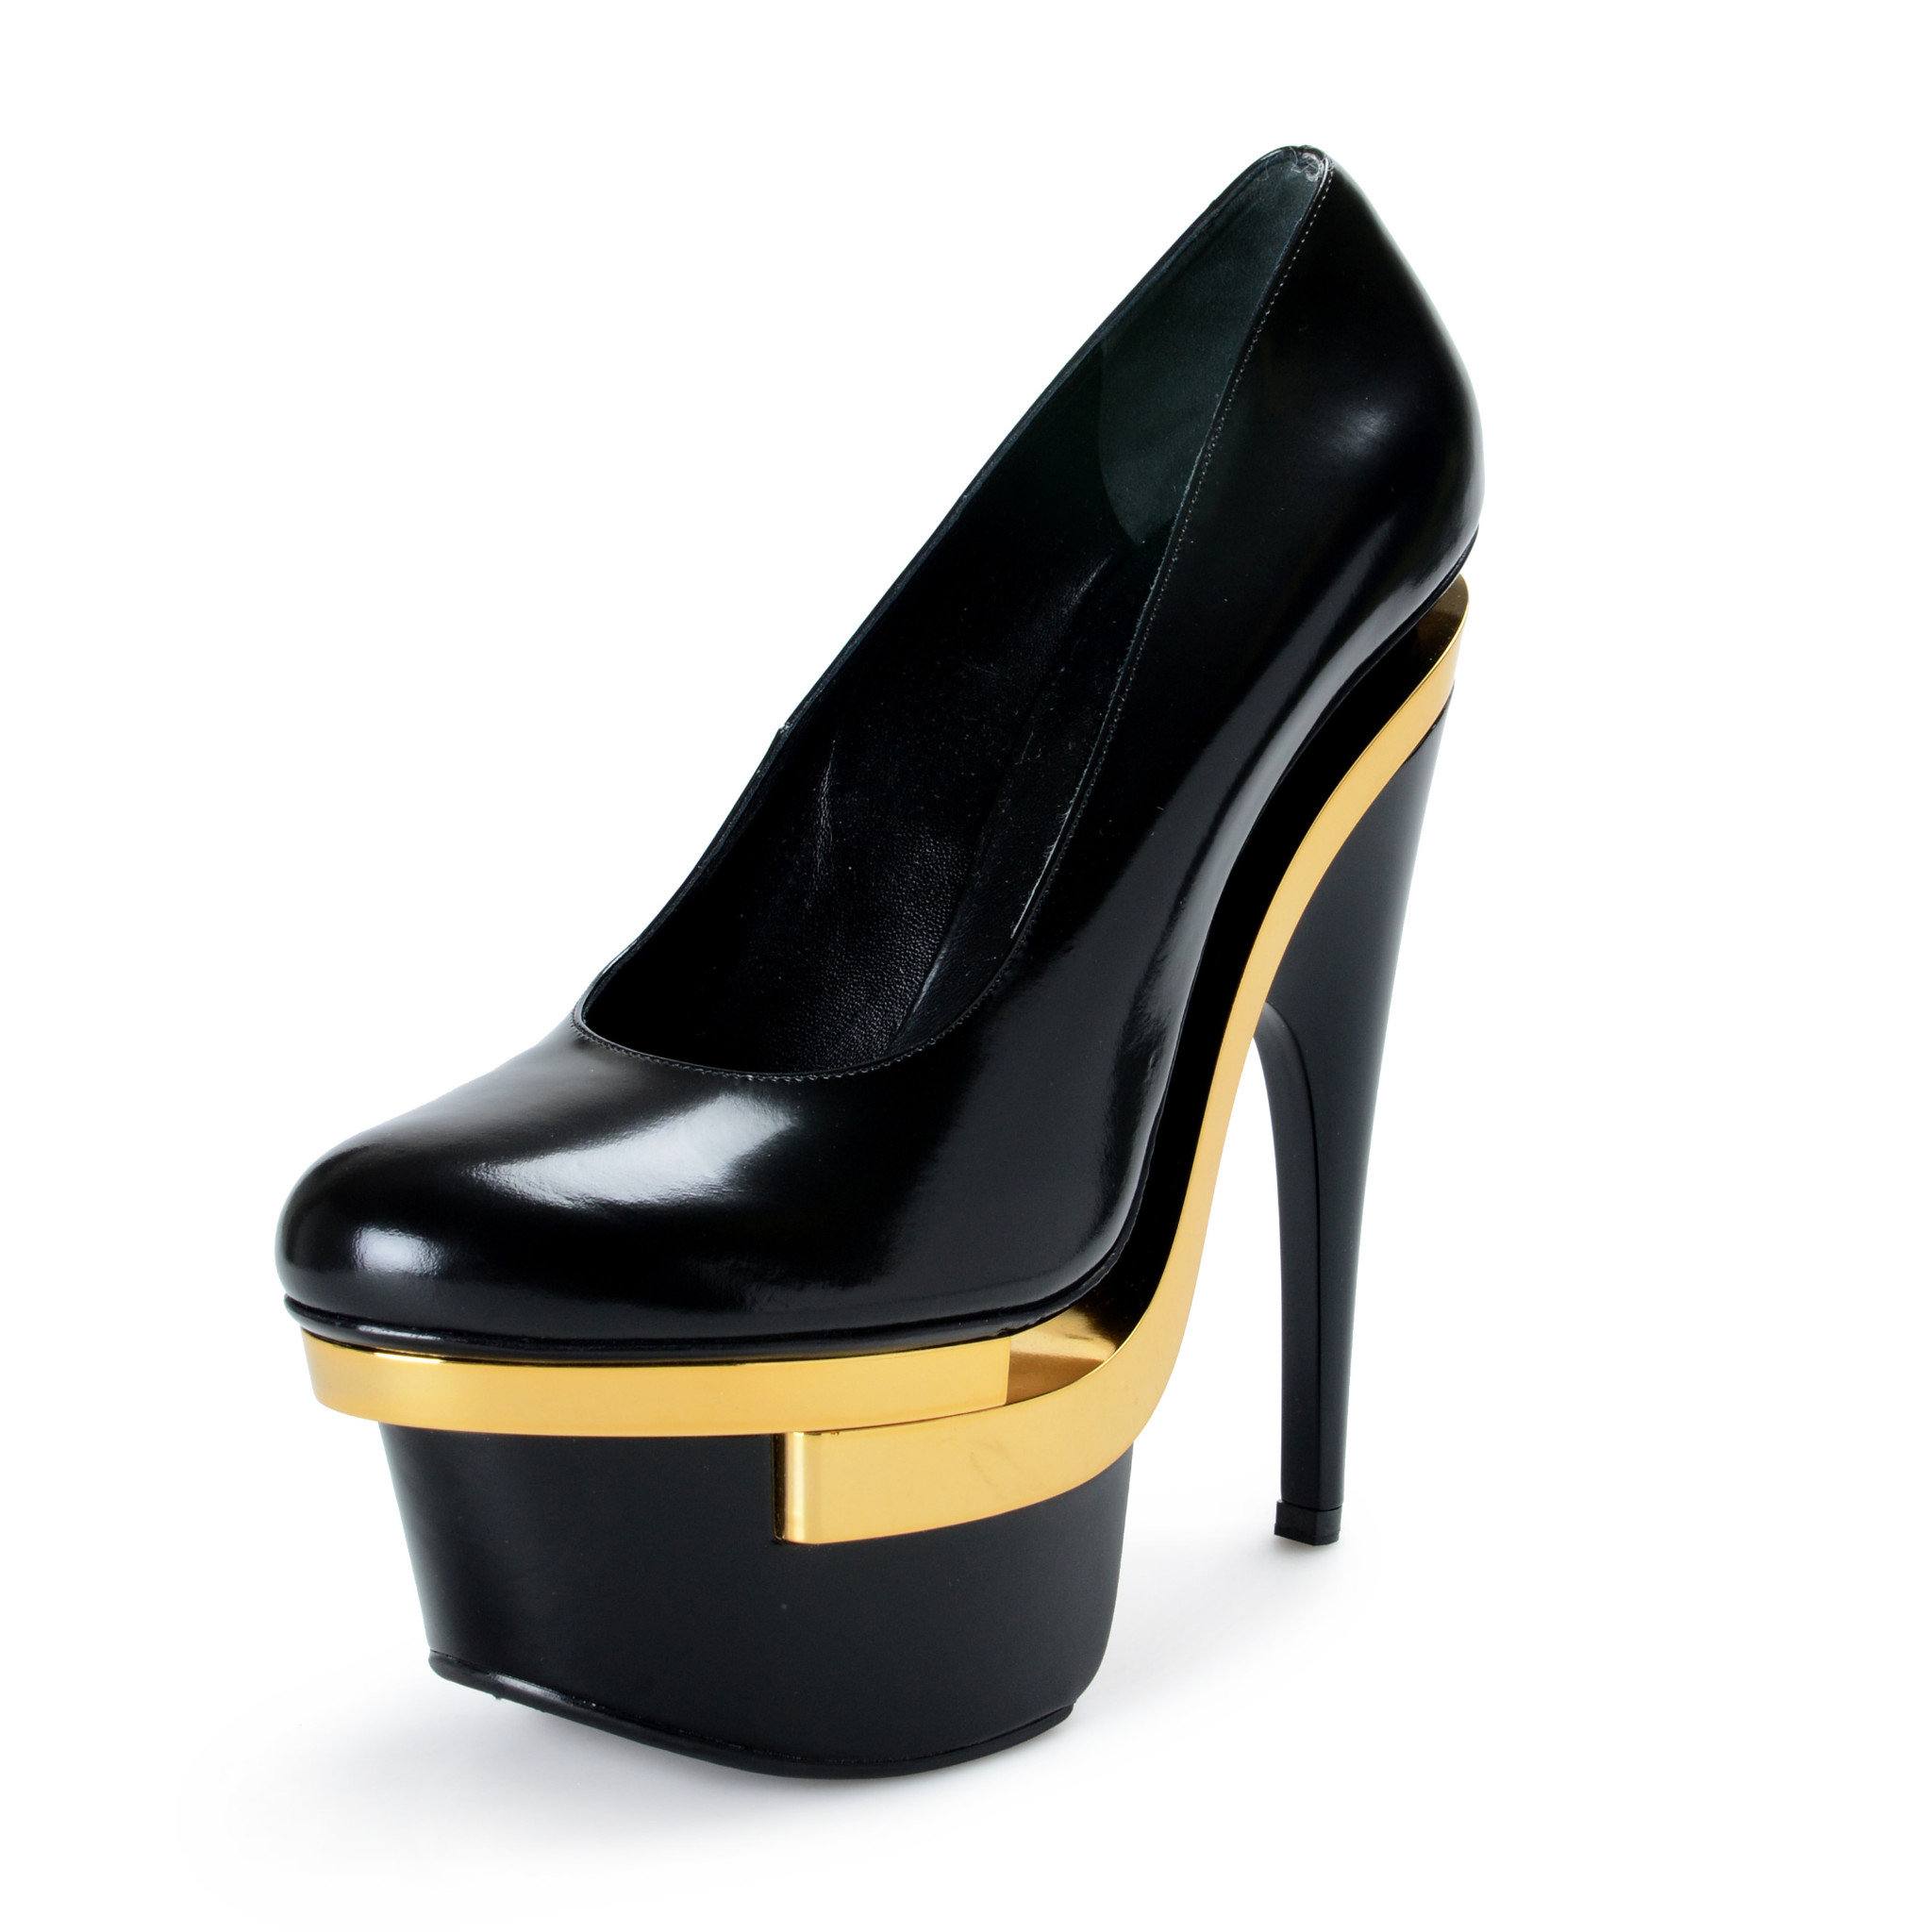 22fca69926 Details about Versace Women's Black Leather High Heel Platform Pumps Shoes  US 10 IT 40